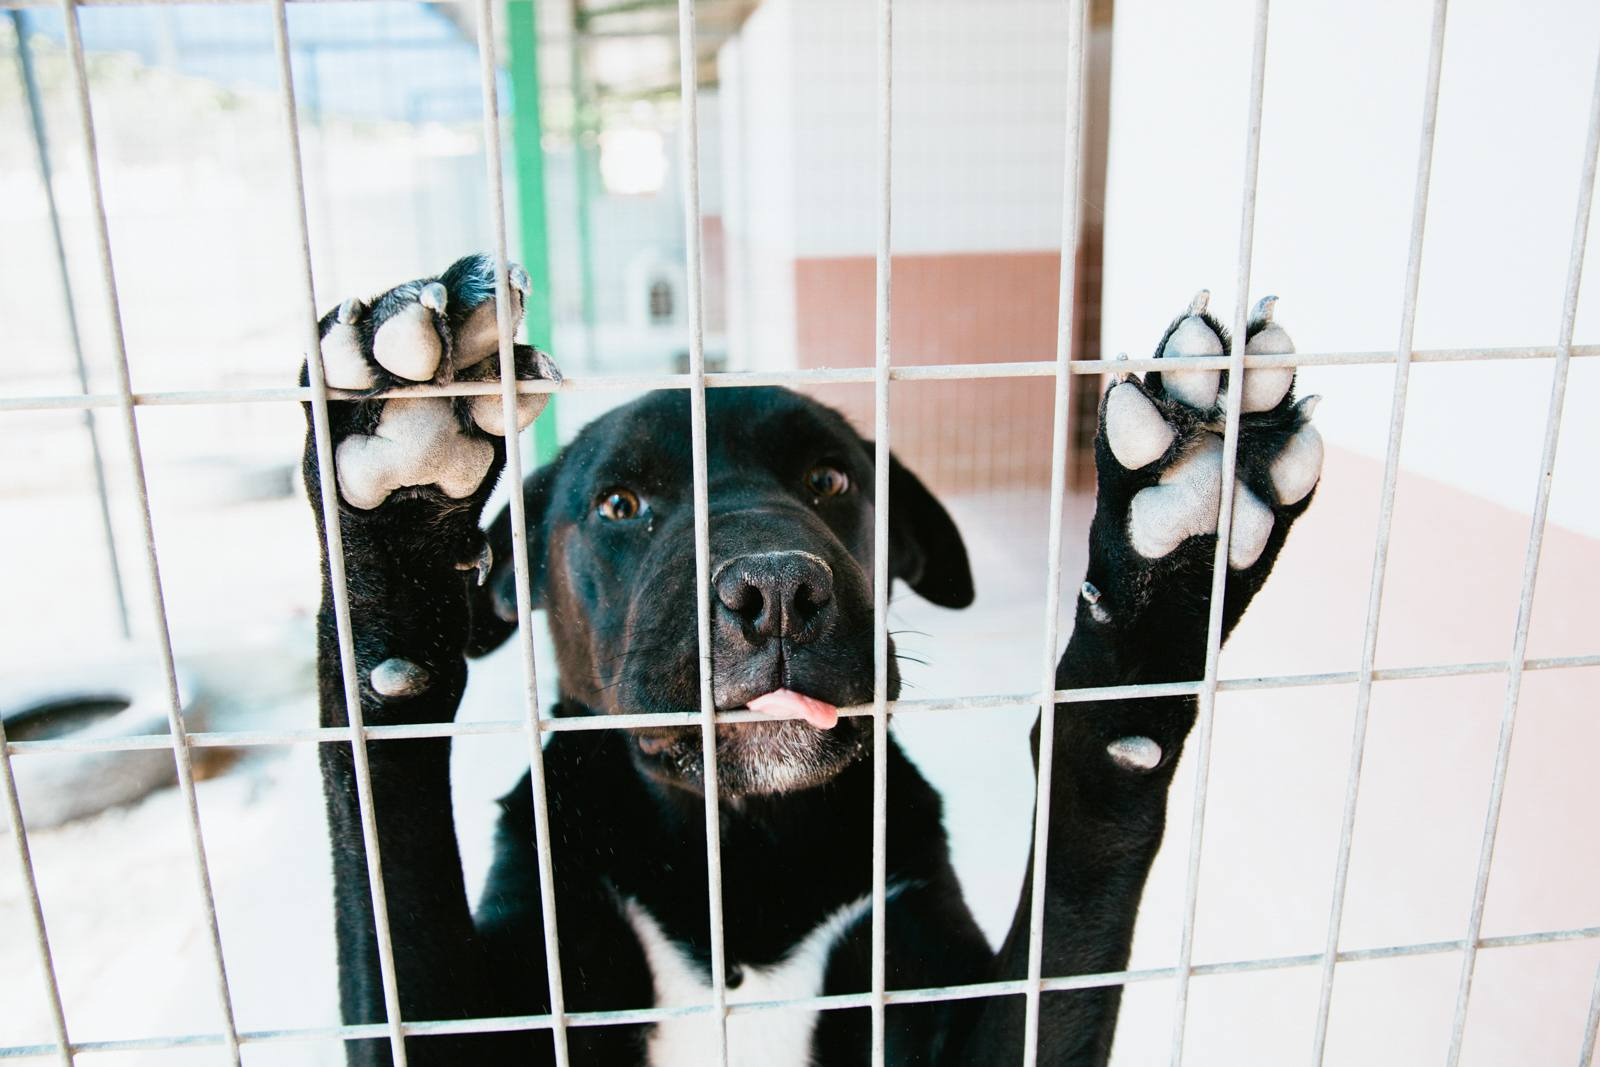 Close-up of black dog in cage